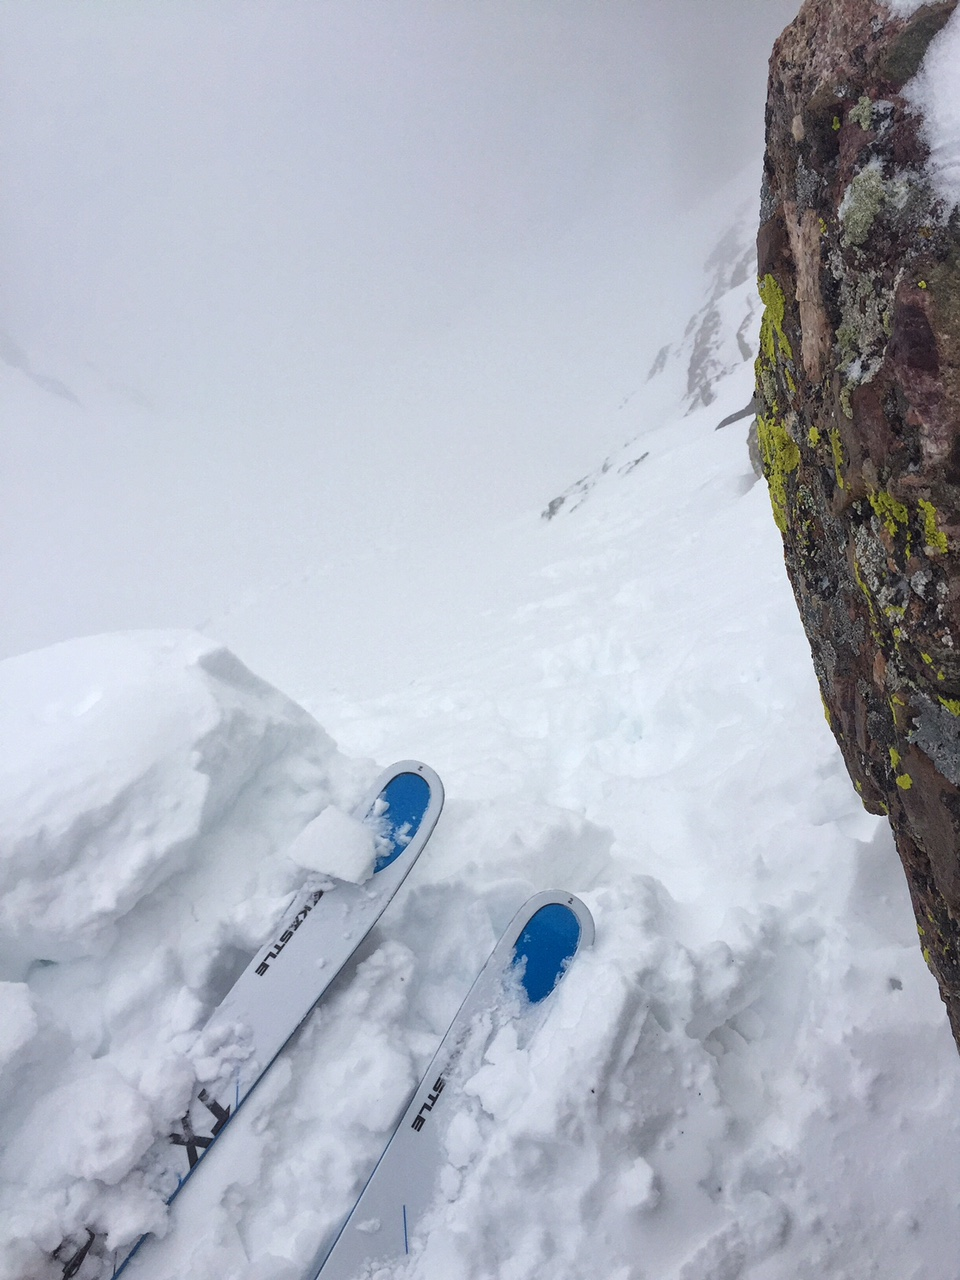 Getting ready to drop into the OB Couloir.